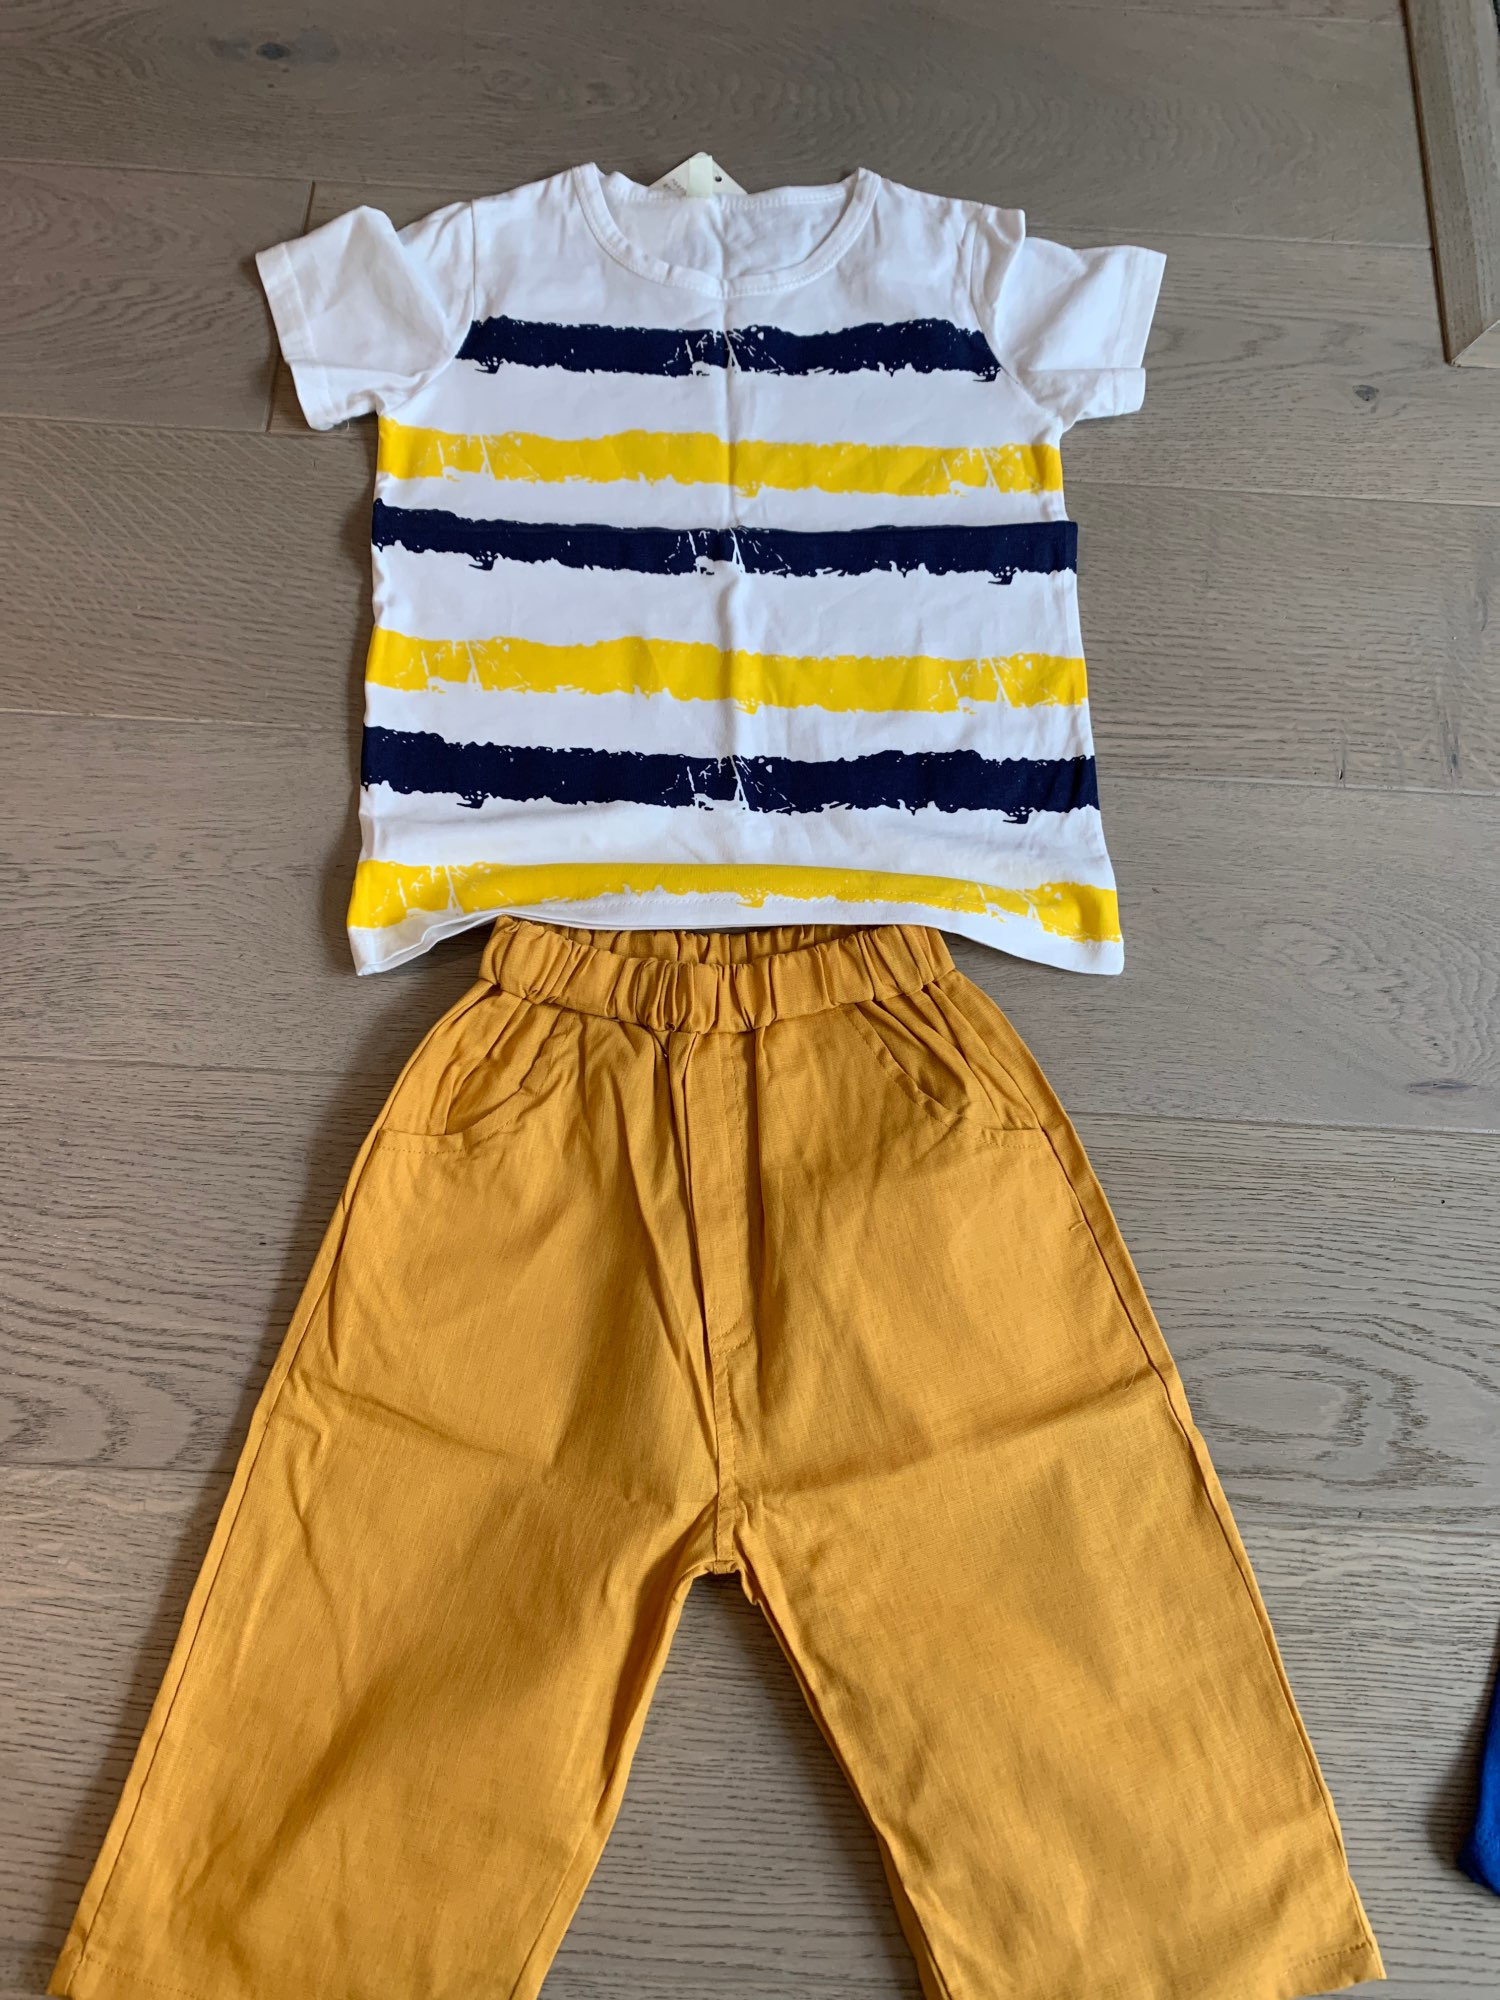 Kids Sets Boys Summer New Children Short Sleeved T Shirt pant Two Sets of Children's Sport Suit 5-14 Ages Clothing 10 12 Year photo review